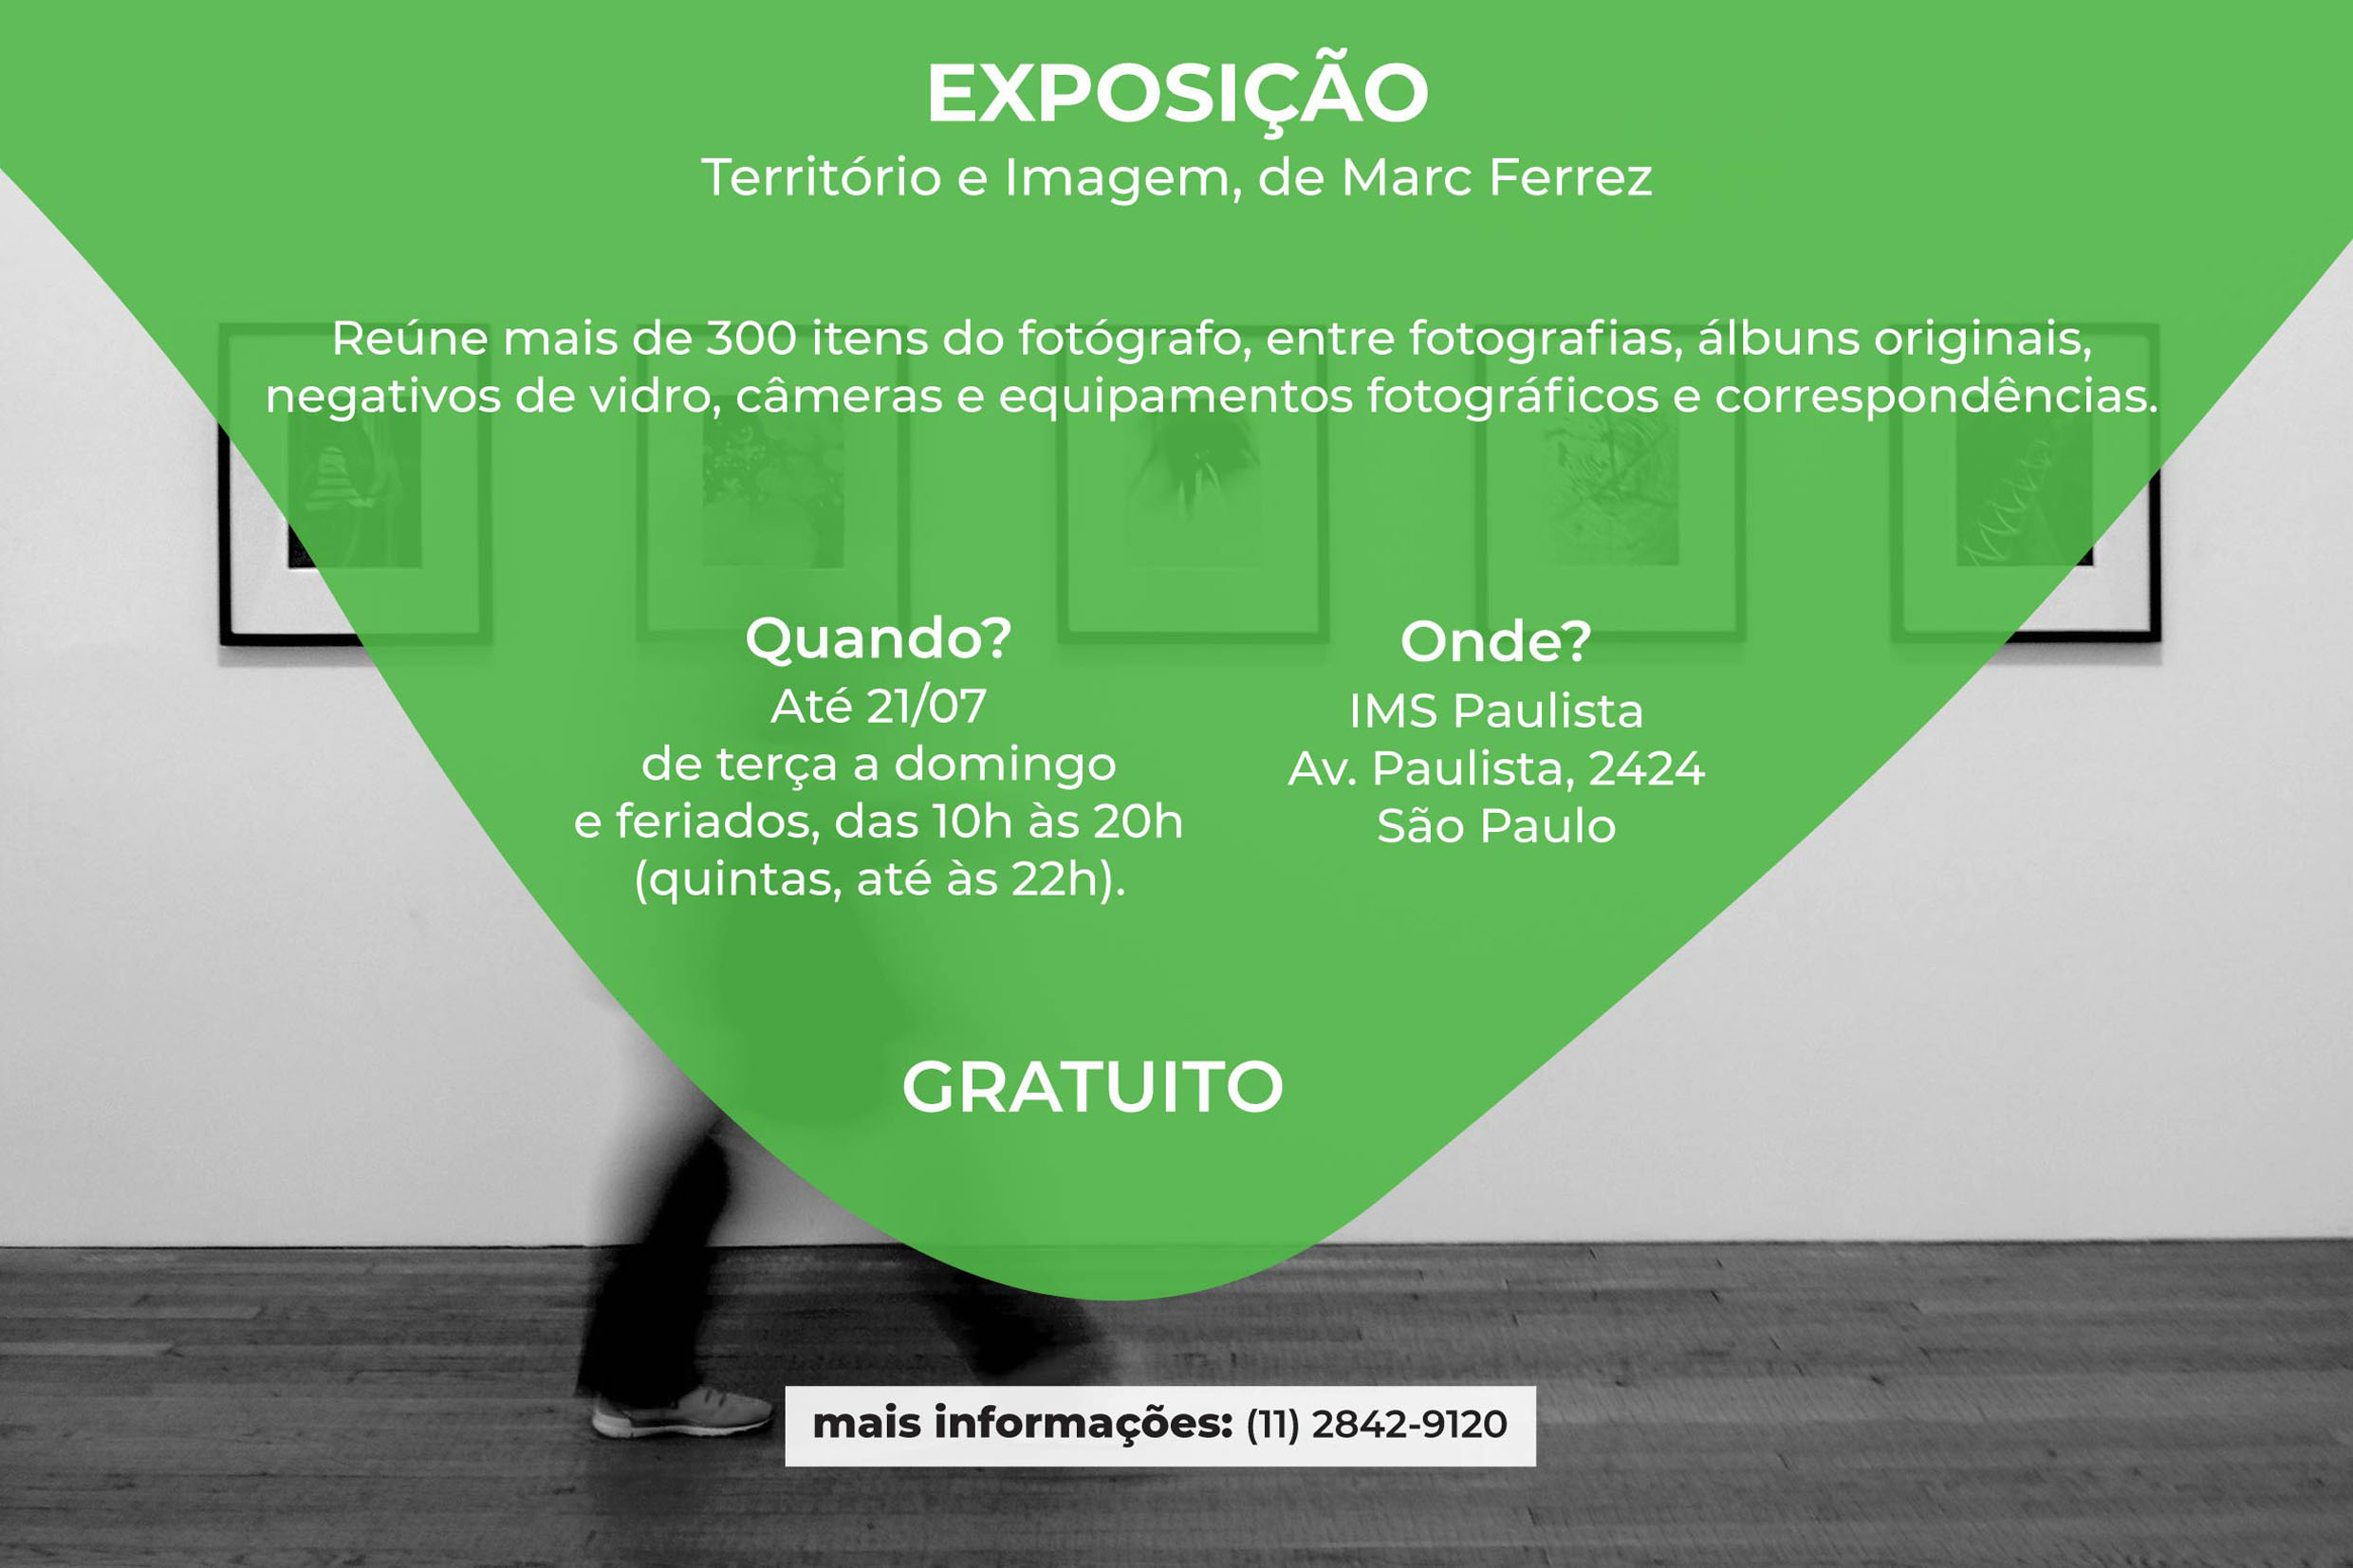 Agência Alesp<a style='float:right' href='https://www3.al.sp.gov.br/repositorio/noticia/N-07-2019/fg236869.jpg' target=_blank><img src='/_img/material-file-download-white.png' width='14px' alt='Clique para baixar a imagem'></a>